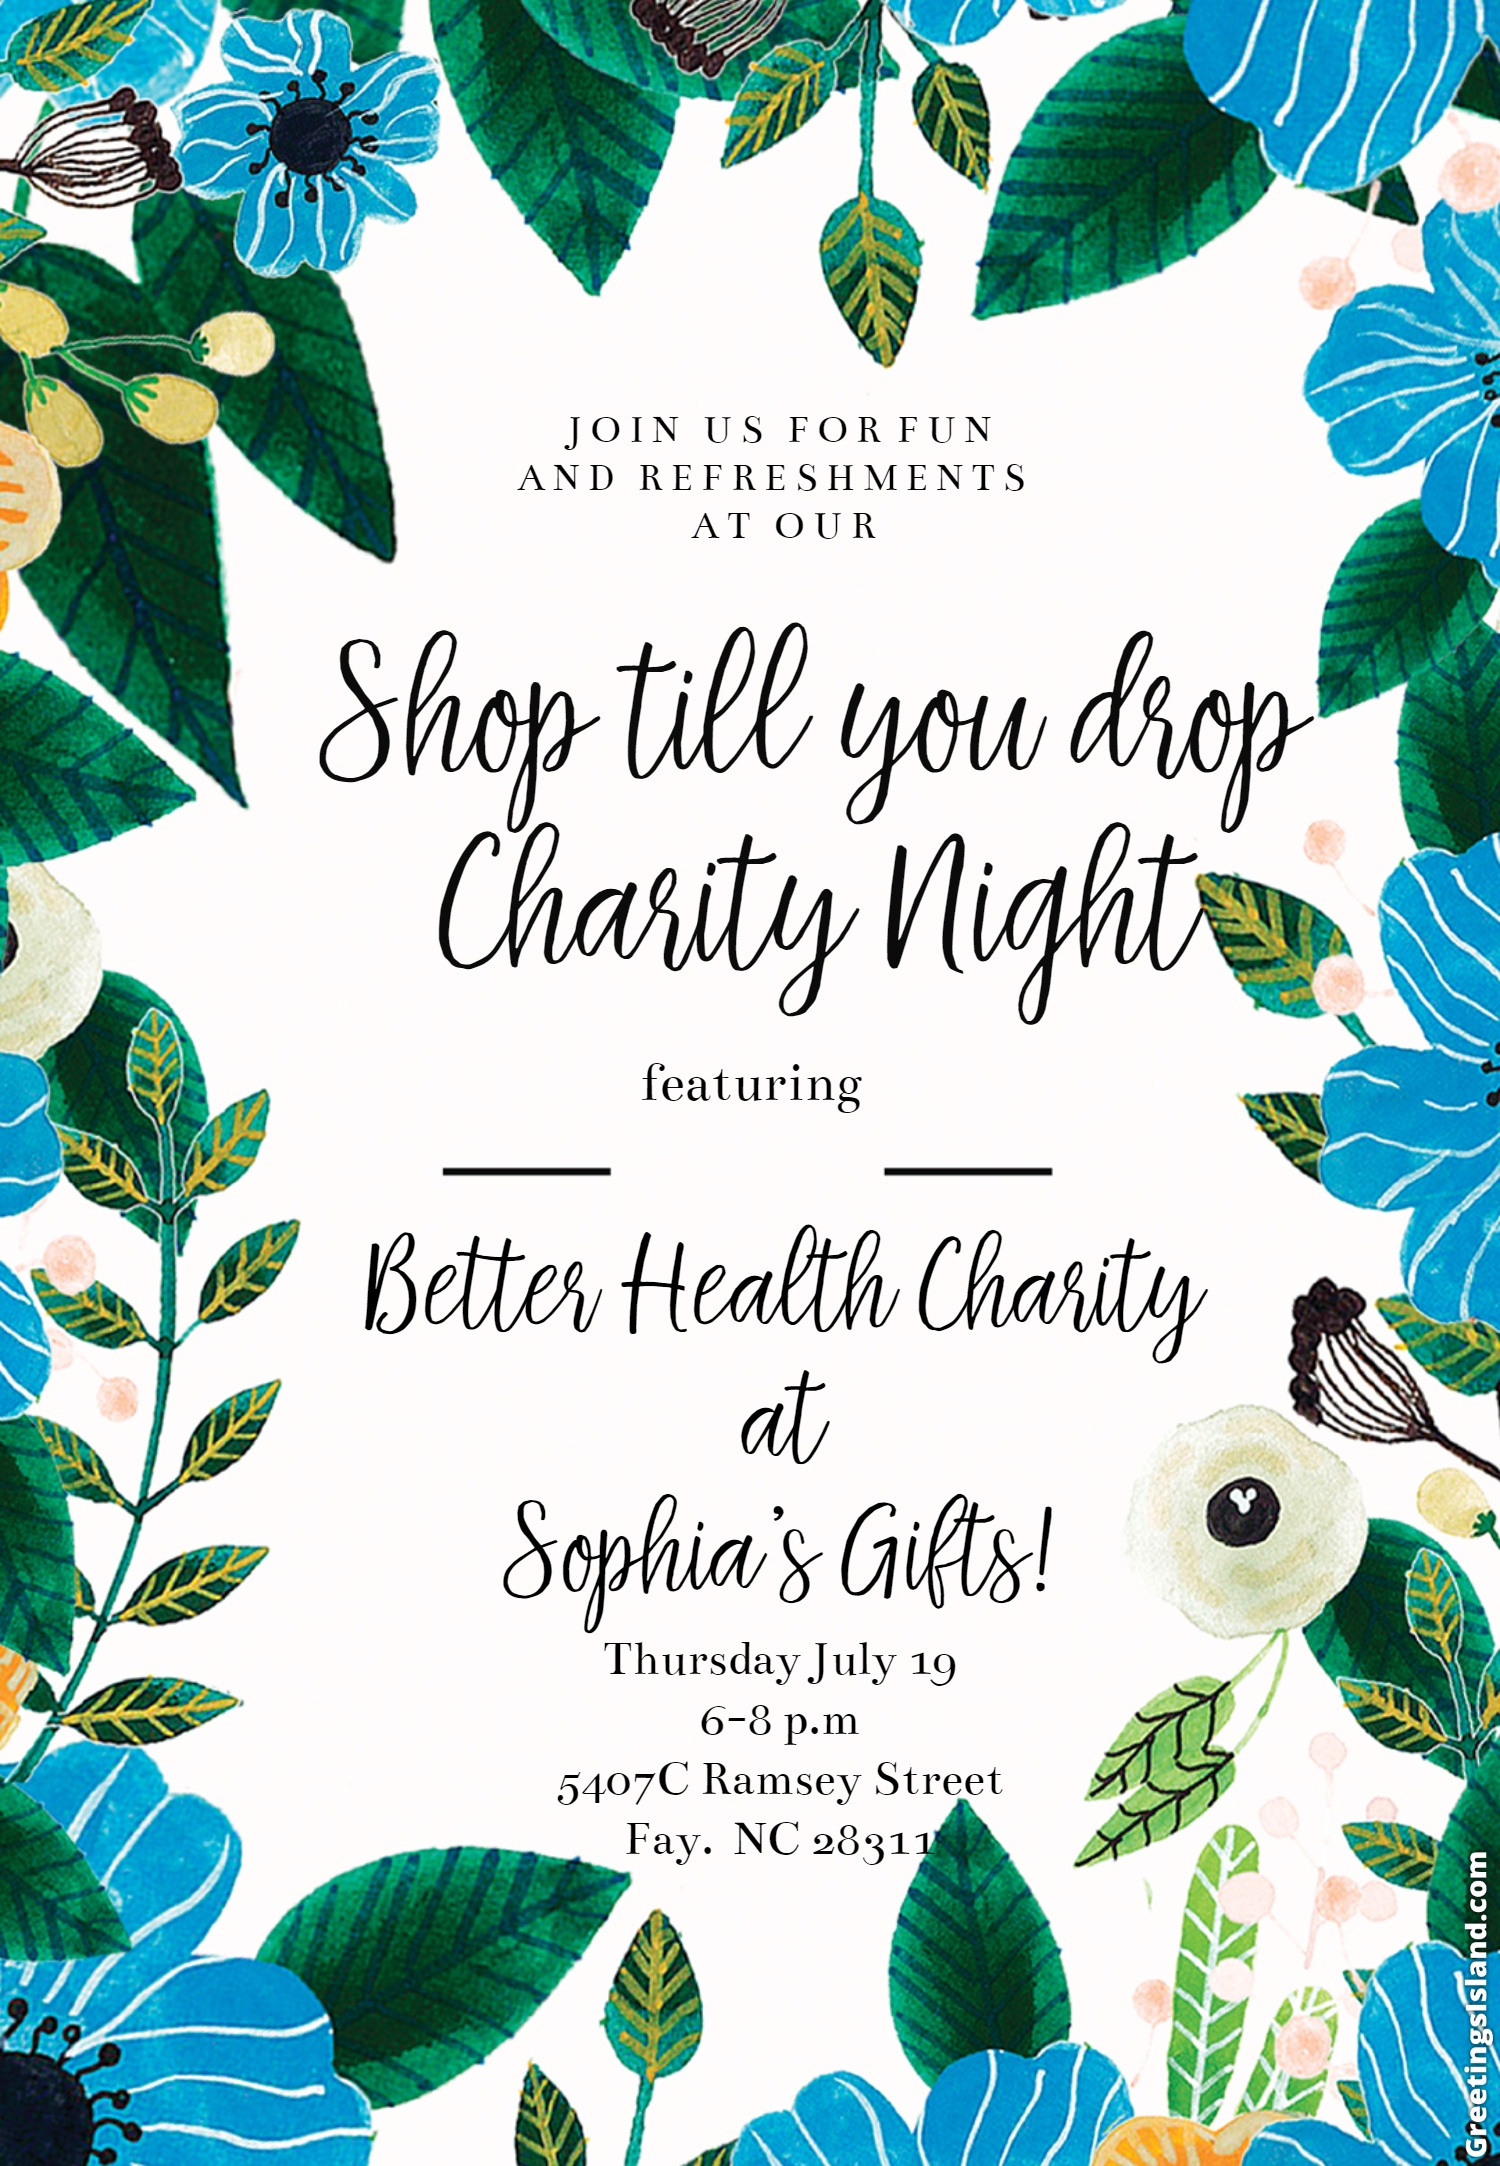 Charity Night at Sophia's Gifts 7/19!